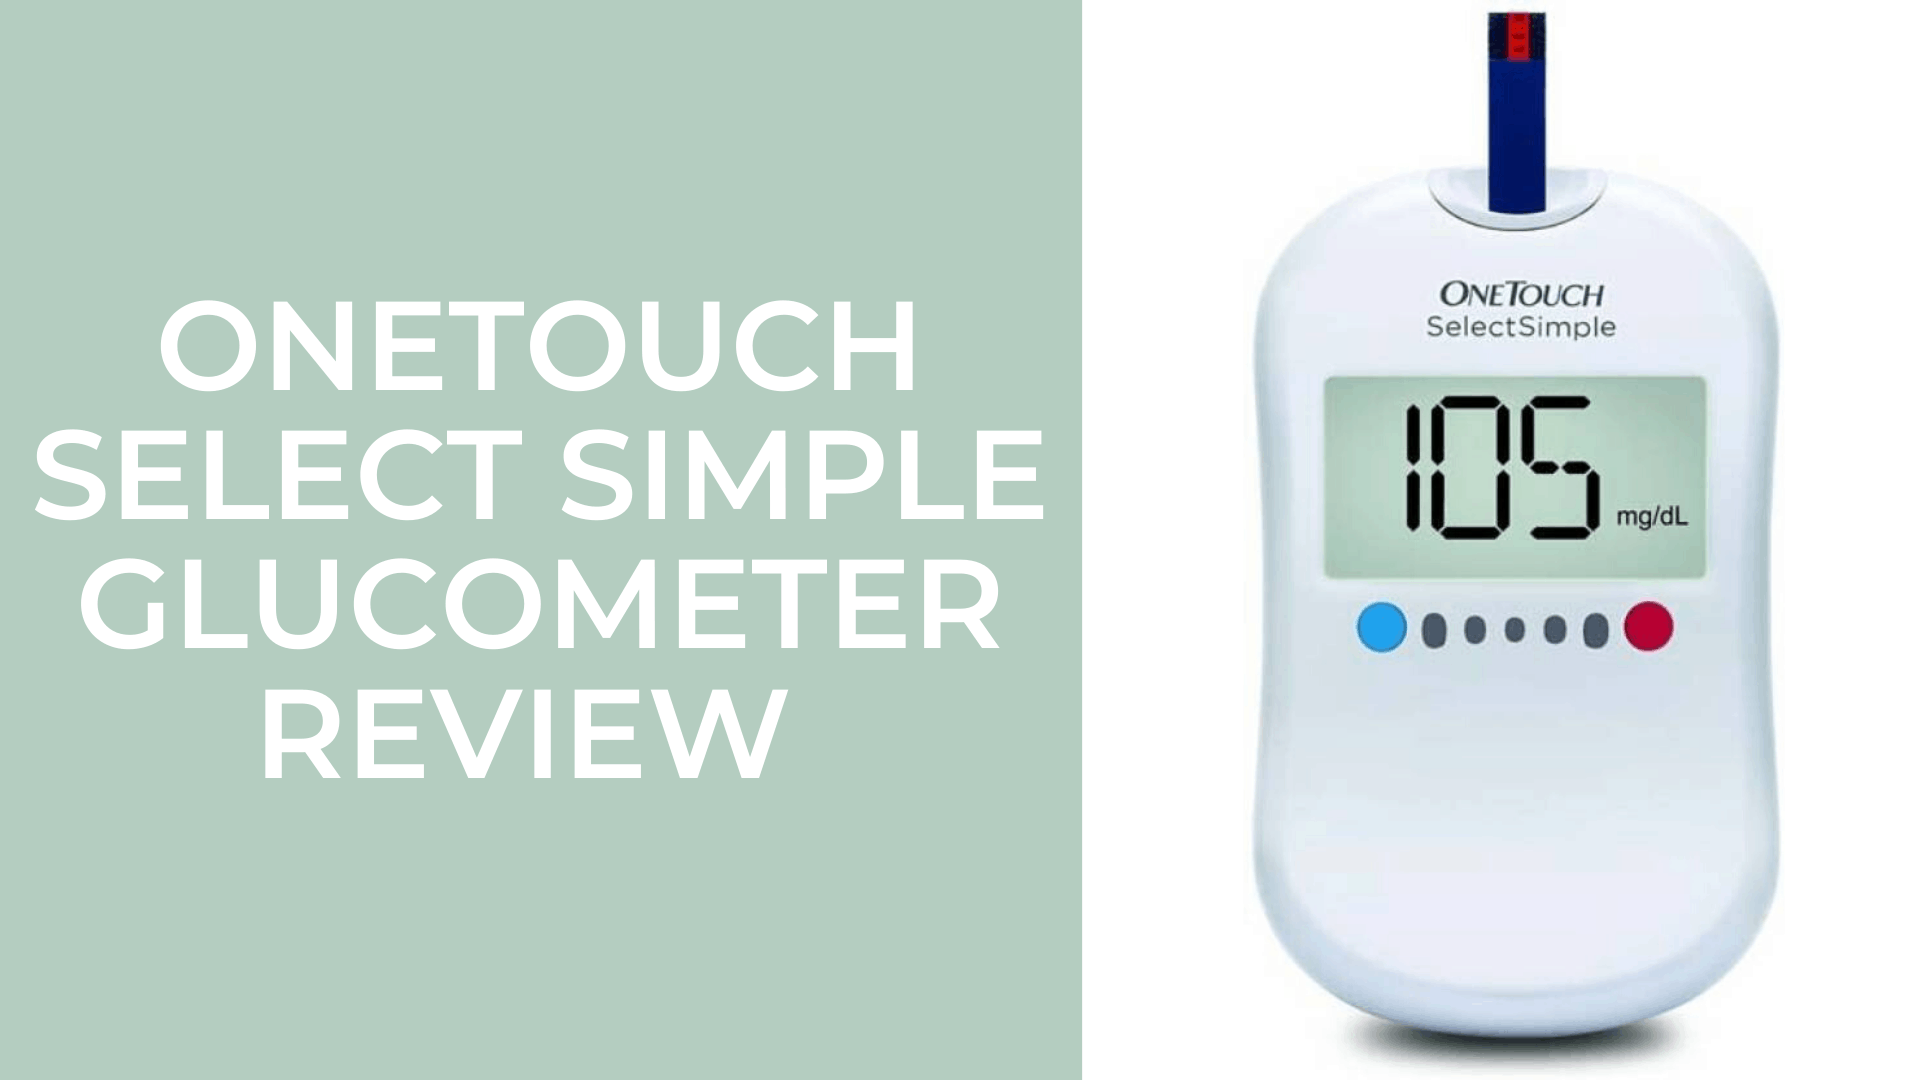 OneTouch Select Simple Review